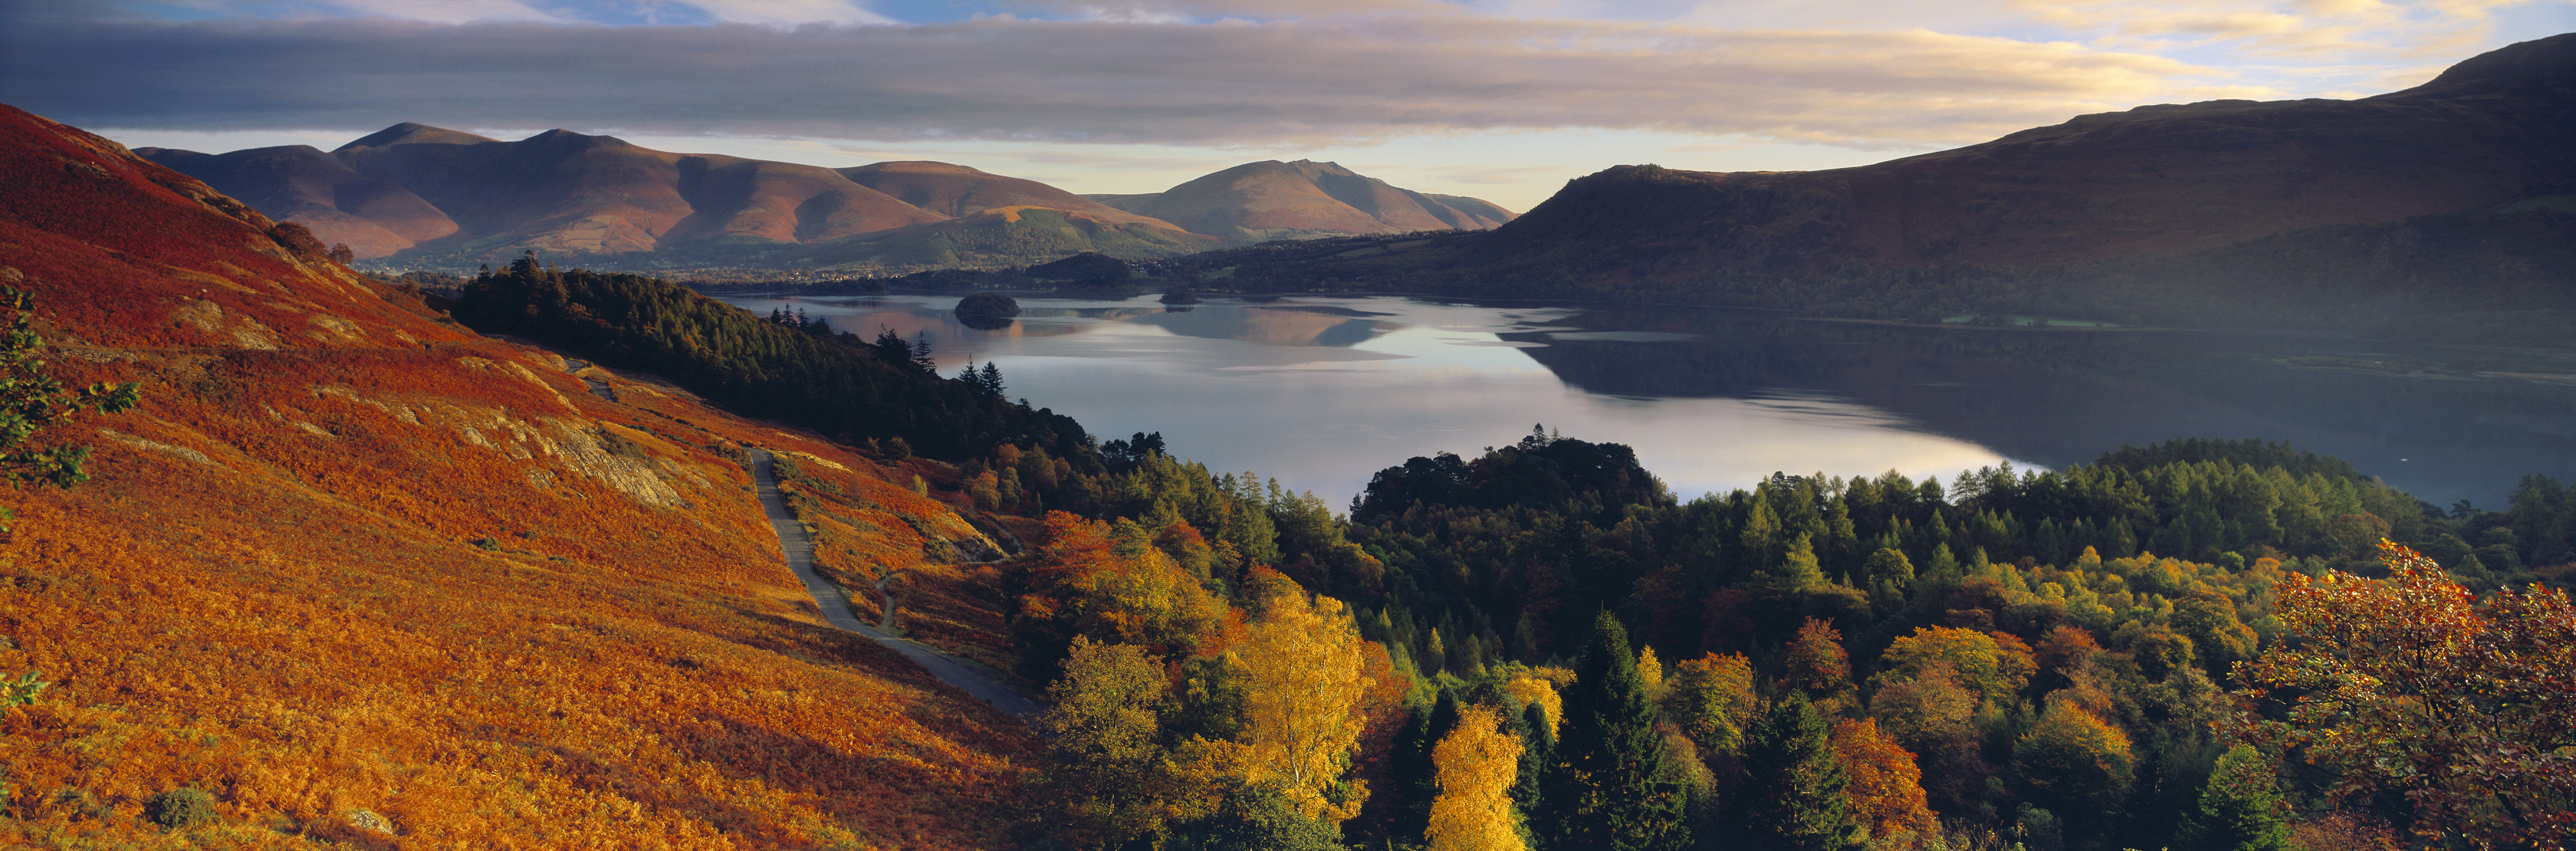 Derwentwater & Skiddaw in autumn, Lake District National Park, Cumbria, England, UK